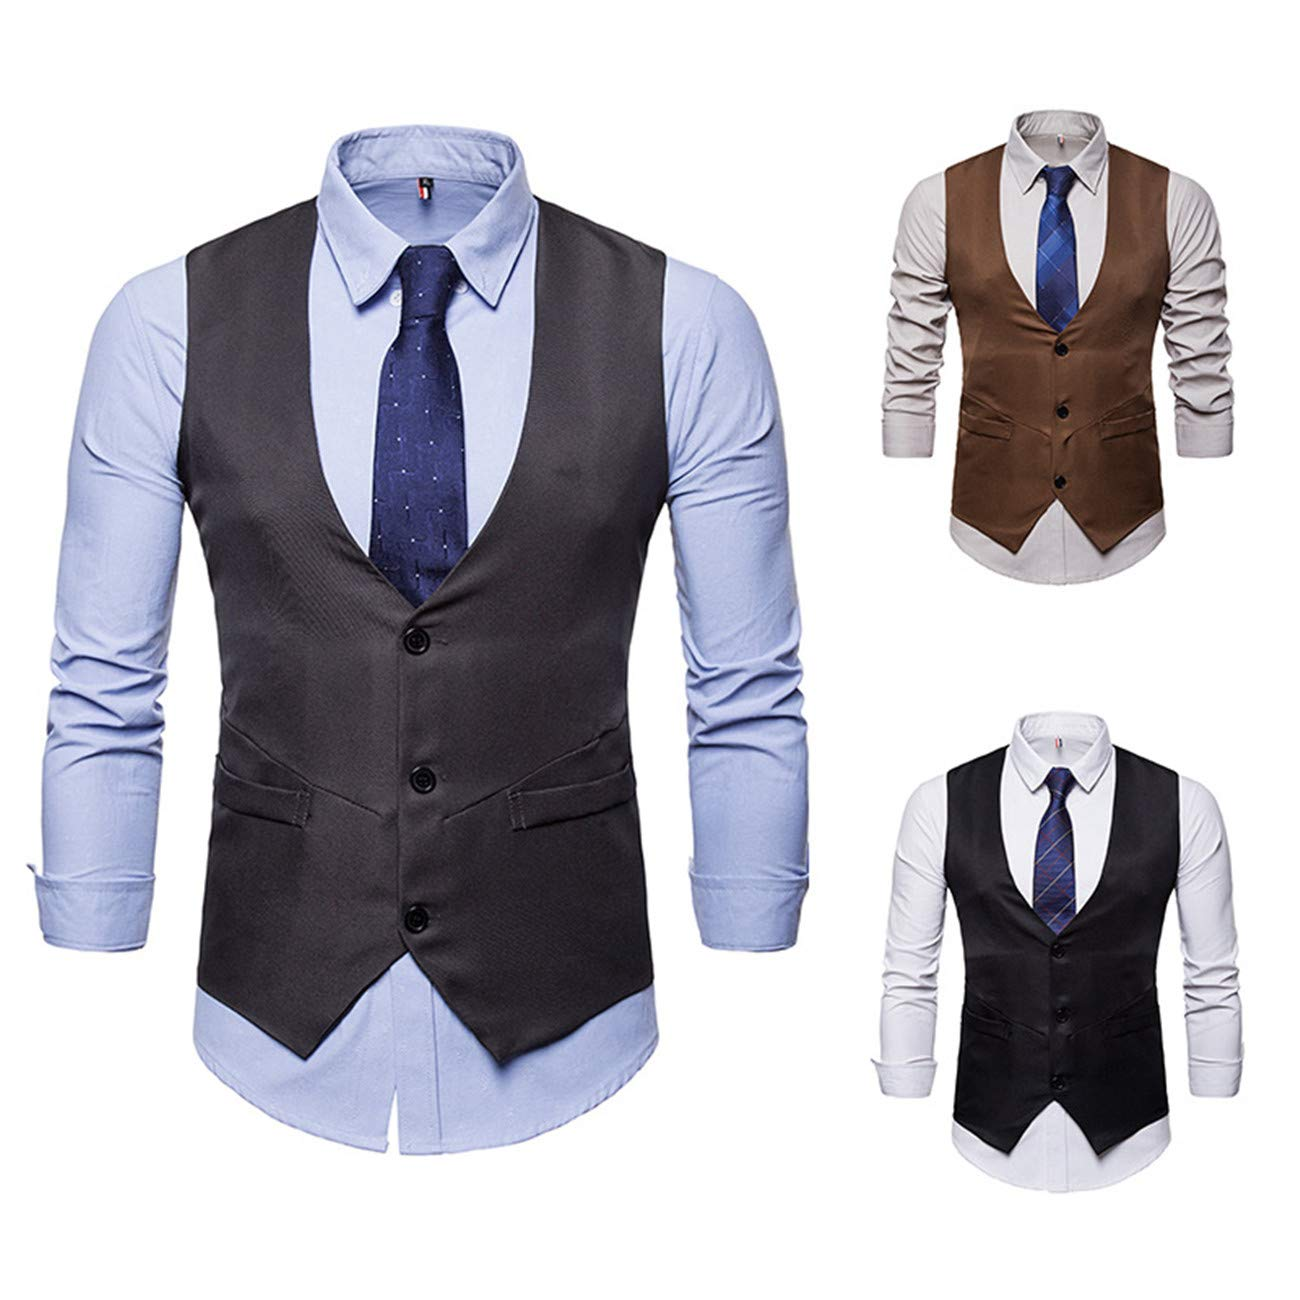 Mens Pure Color Suit Vest Dress Vest Waistcoat for Men Tuxedo Vest